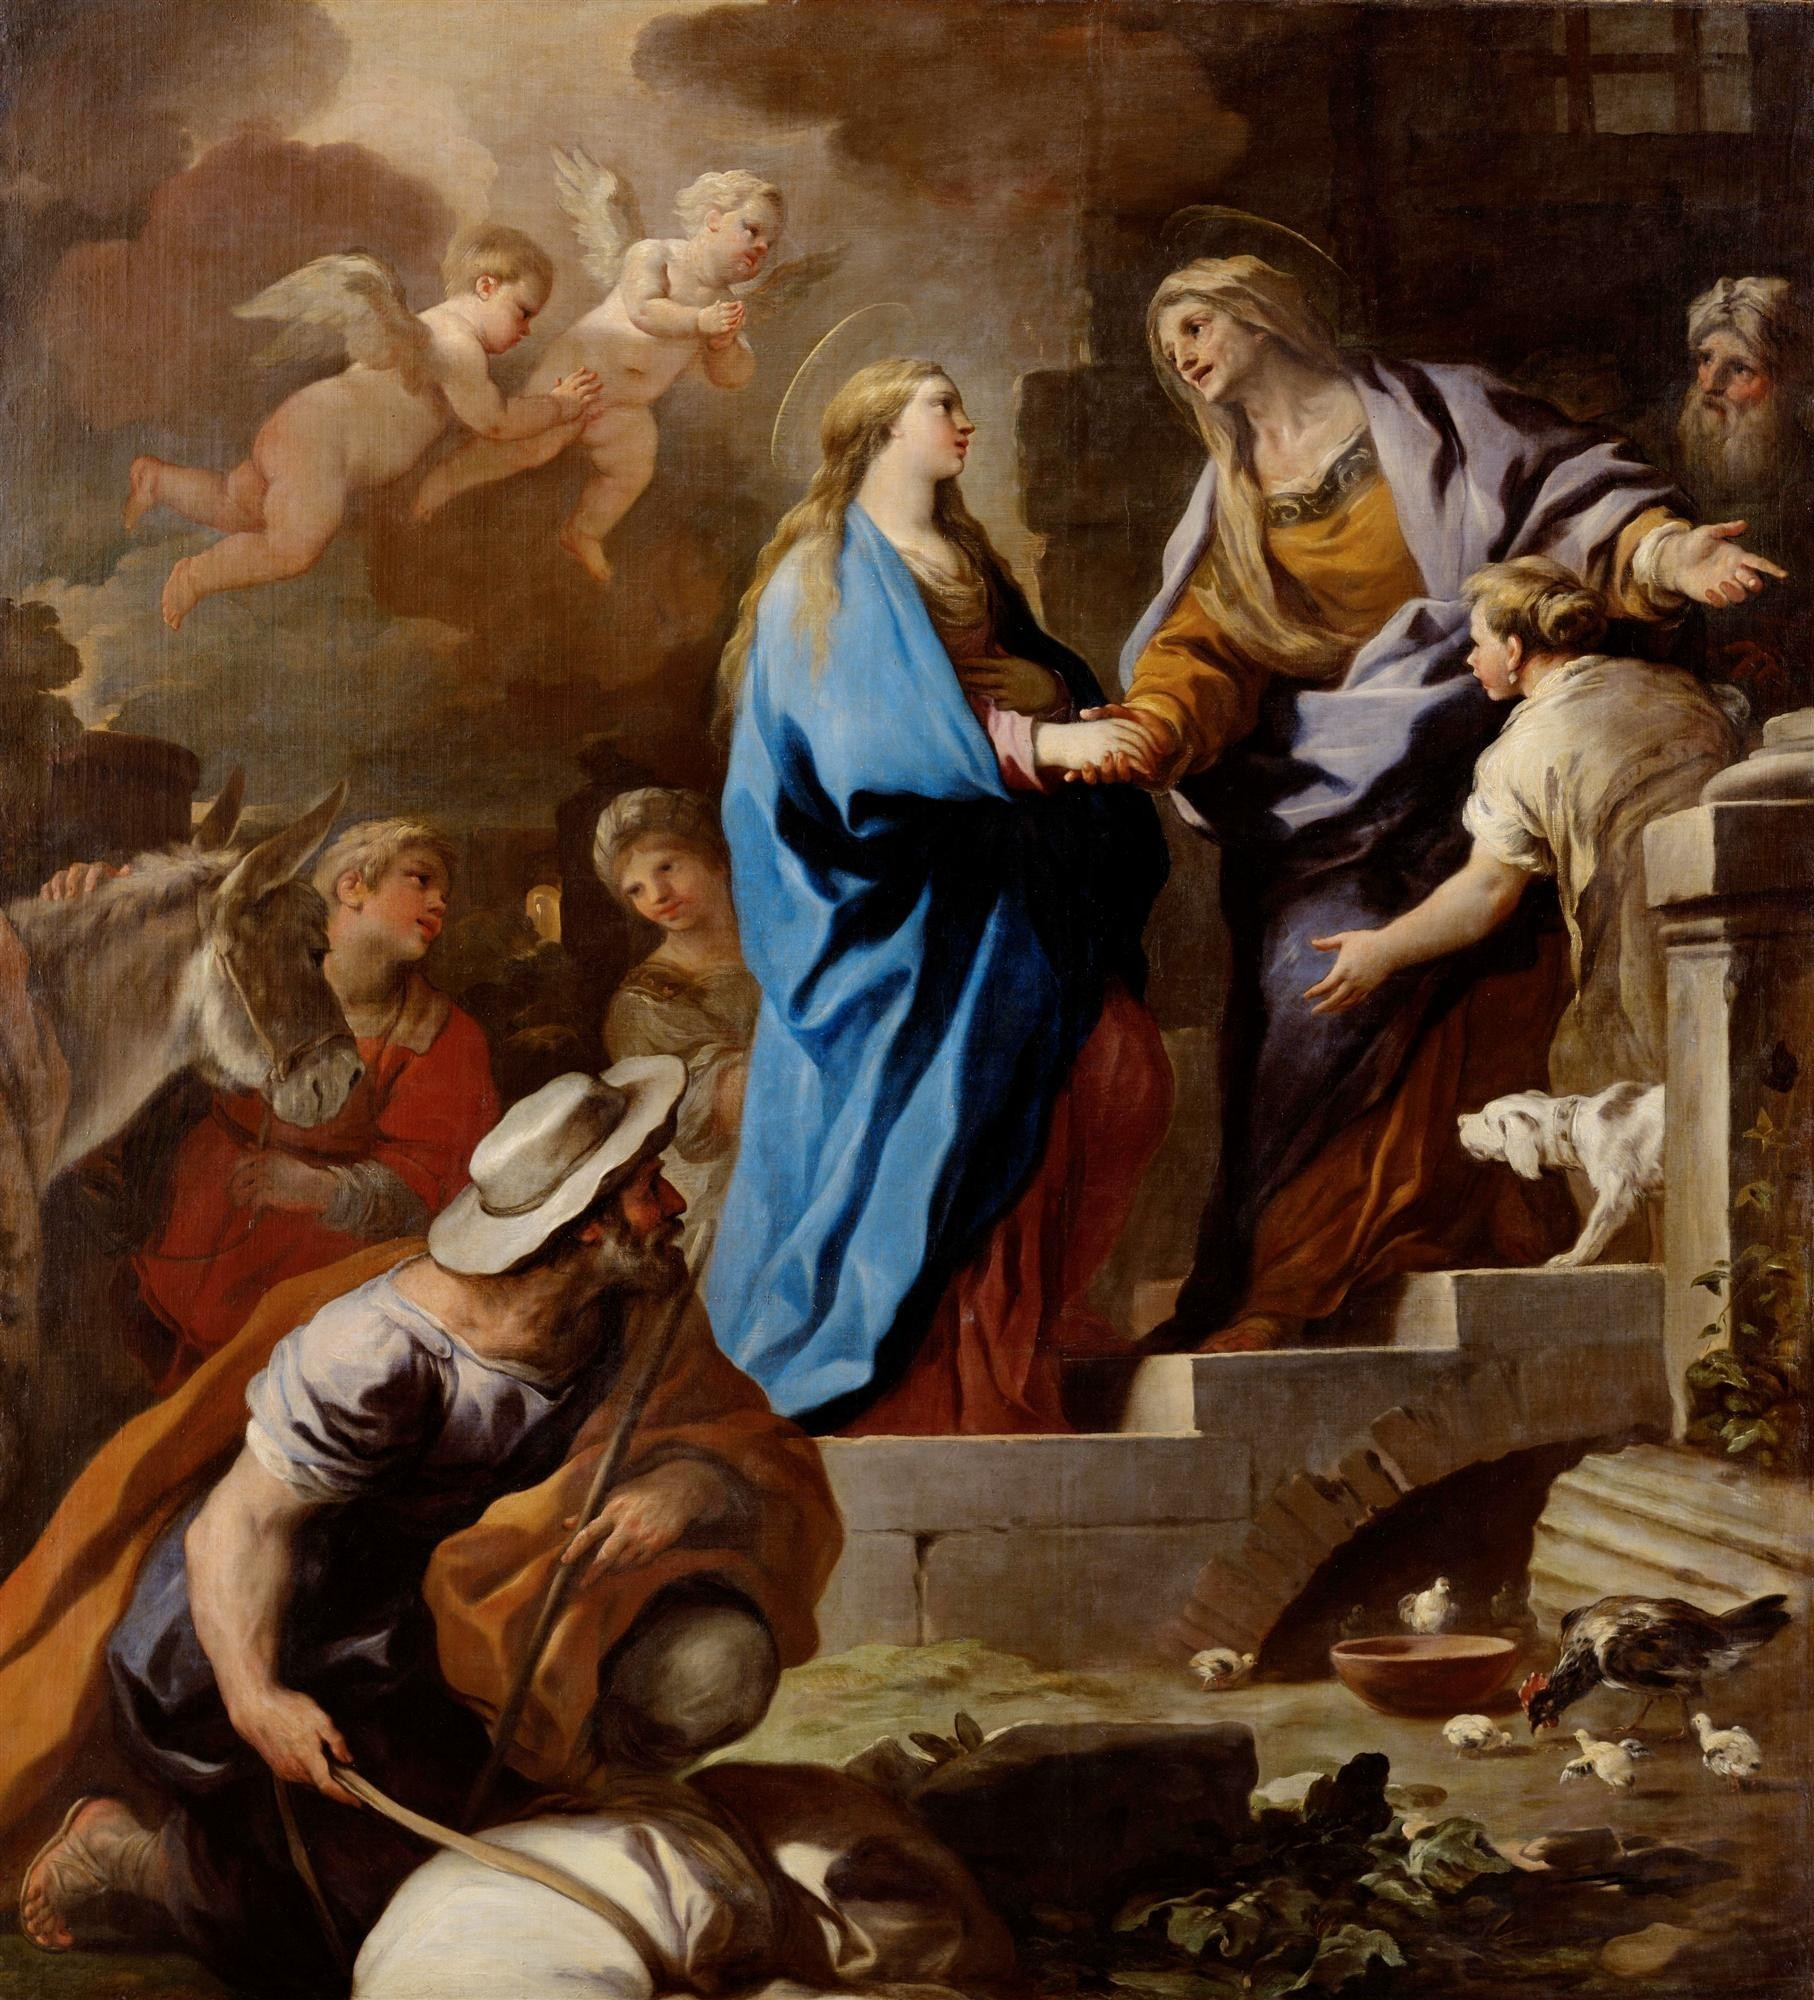 Baroque Art Appeals to Emotions